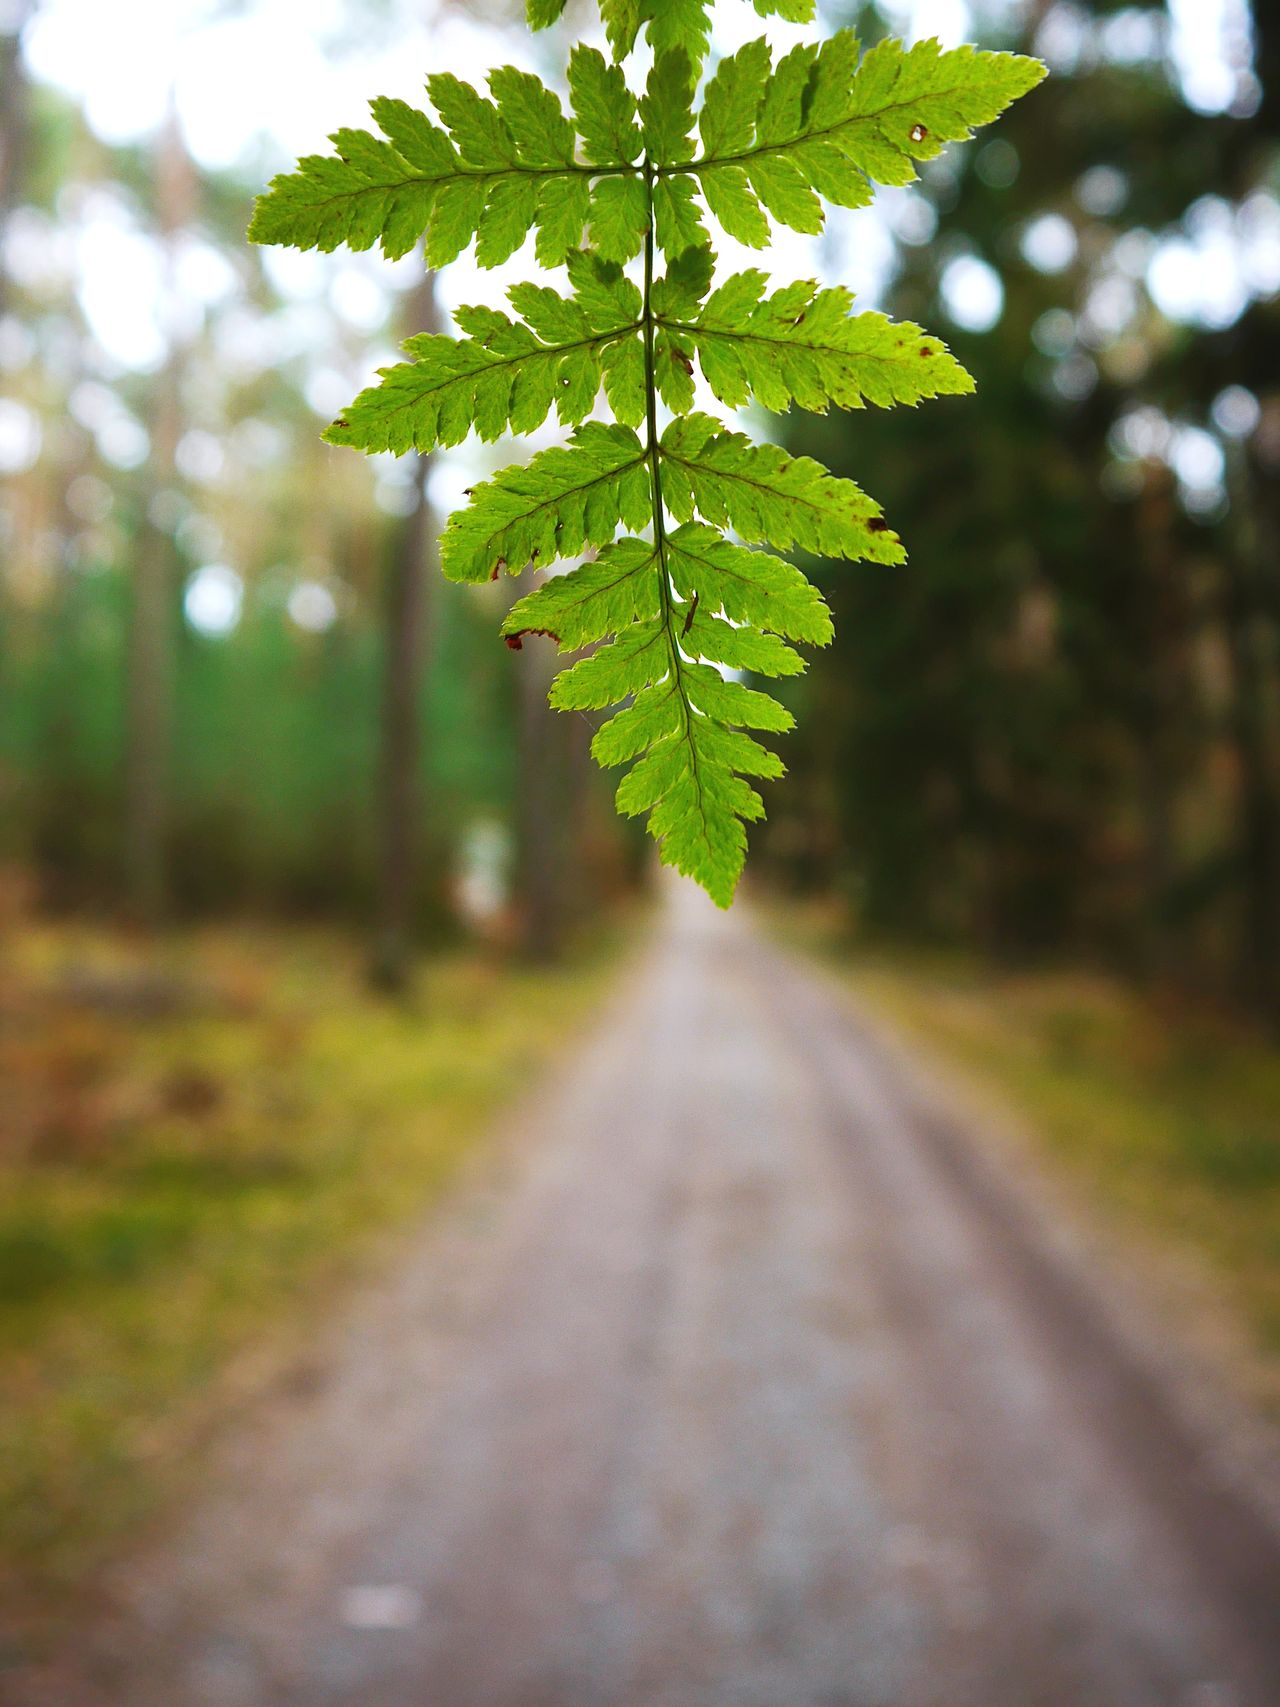 Greenery ... Tree Nature Green Color Close-up Growth The Way Forward Leaf Beauty In Nature No People Tranquility Day Outdoors Branch Freshness